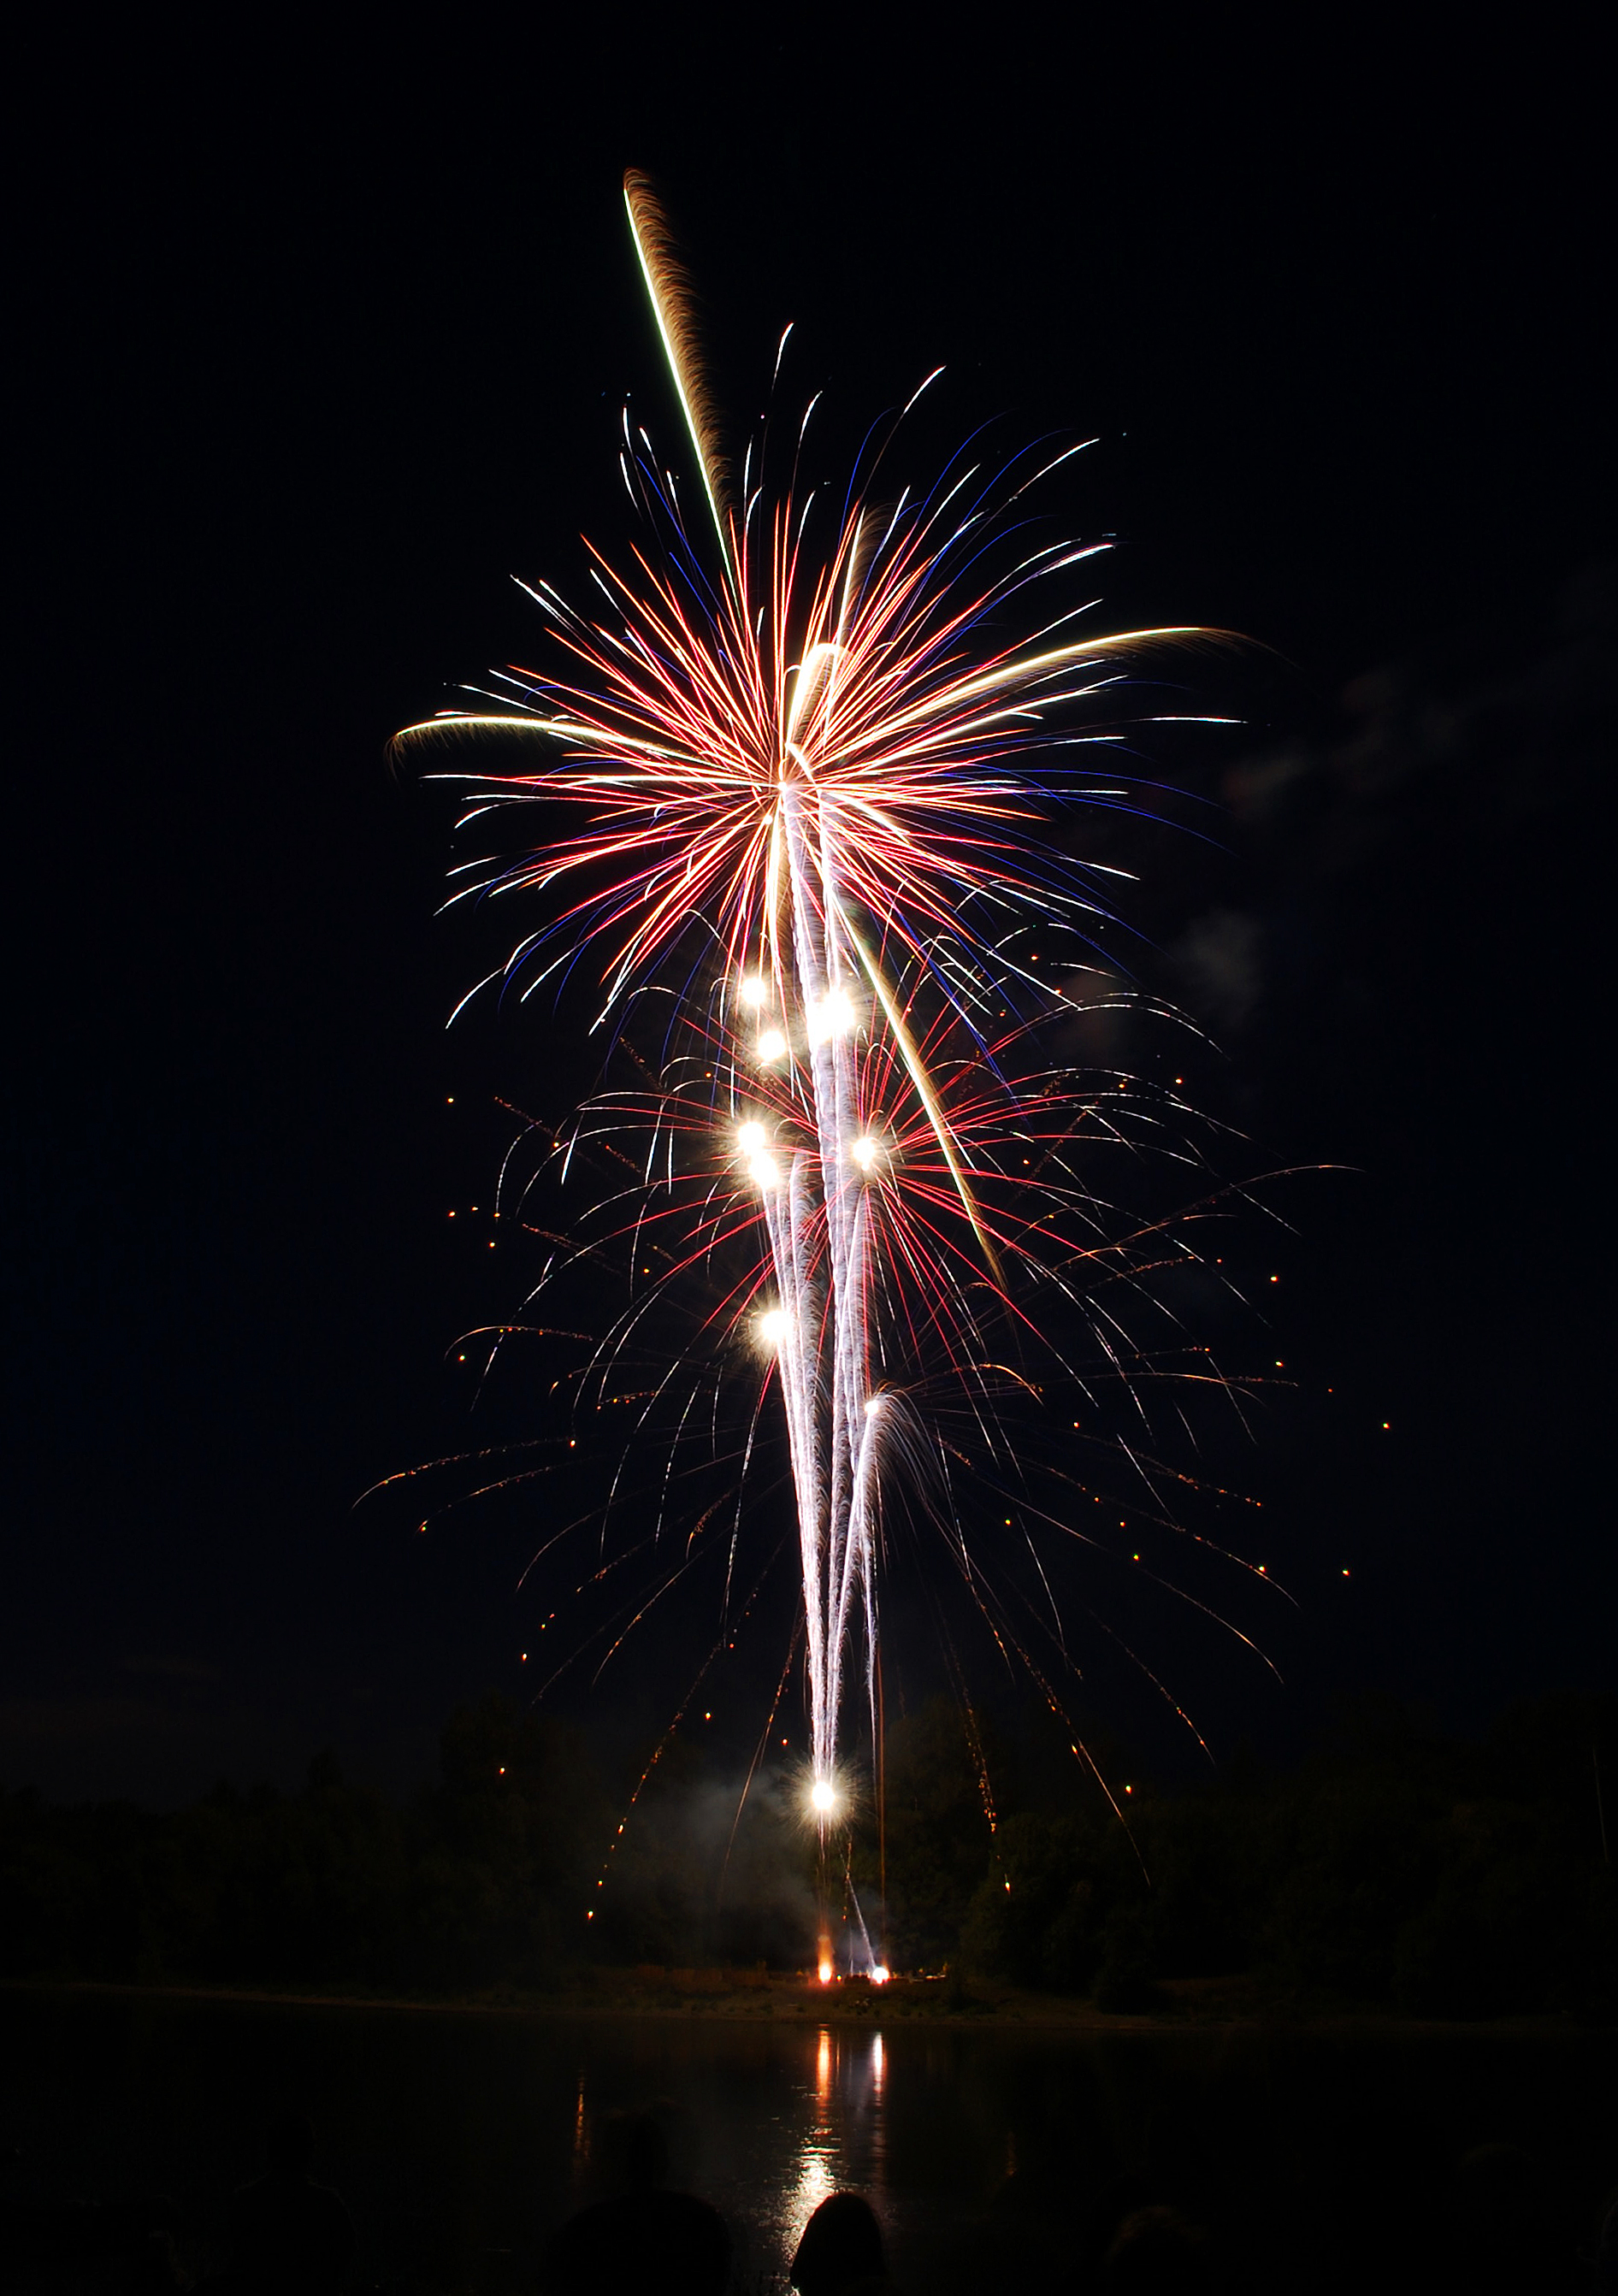 Fireworks Yellow White and Red.jpg